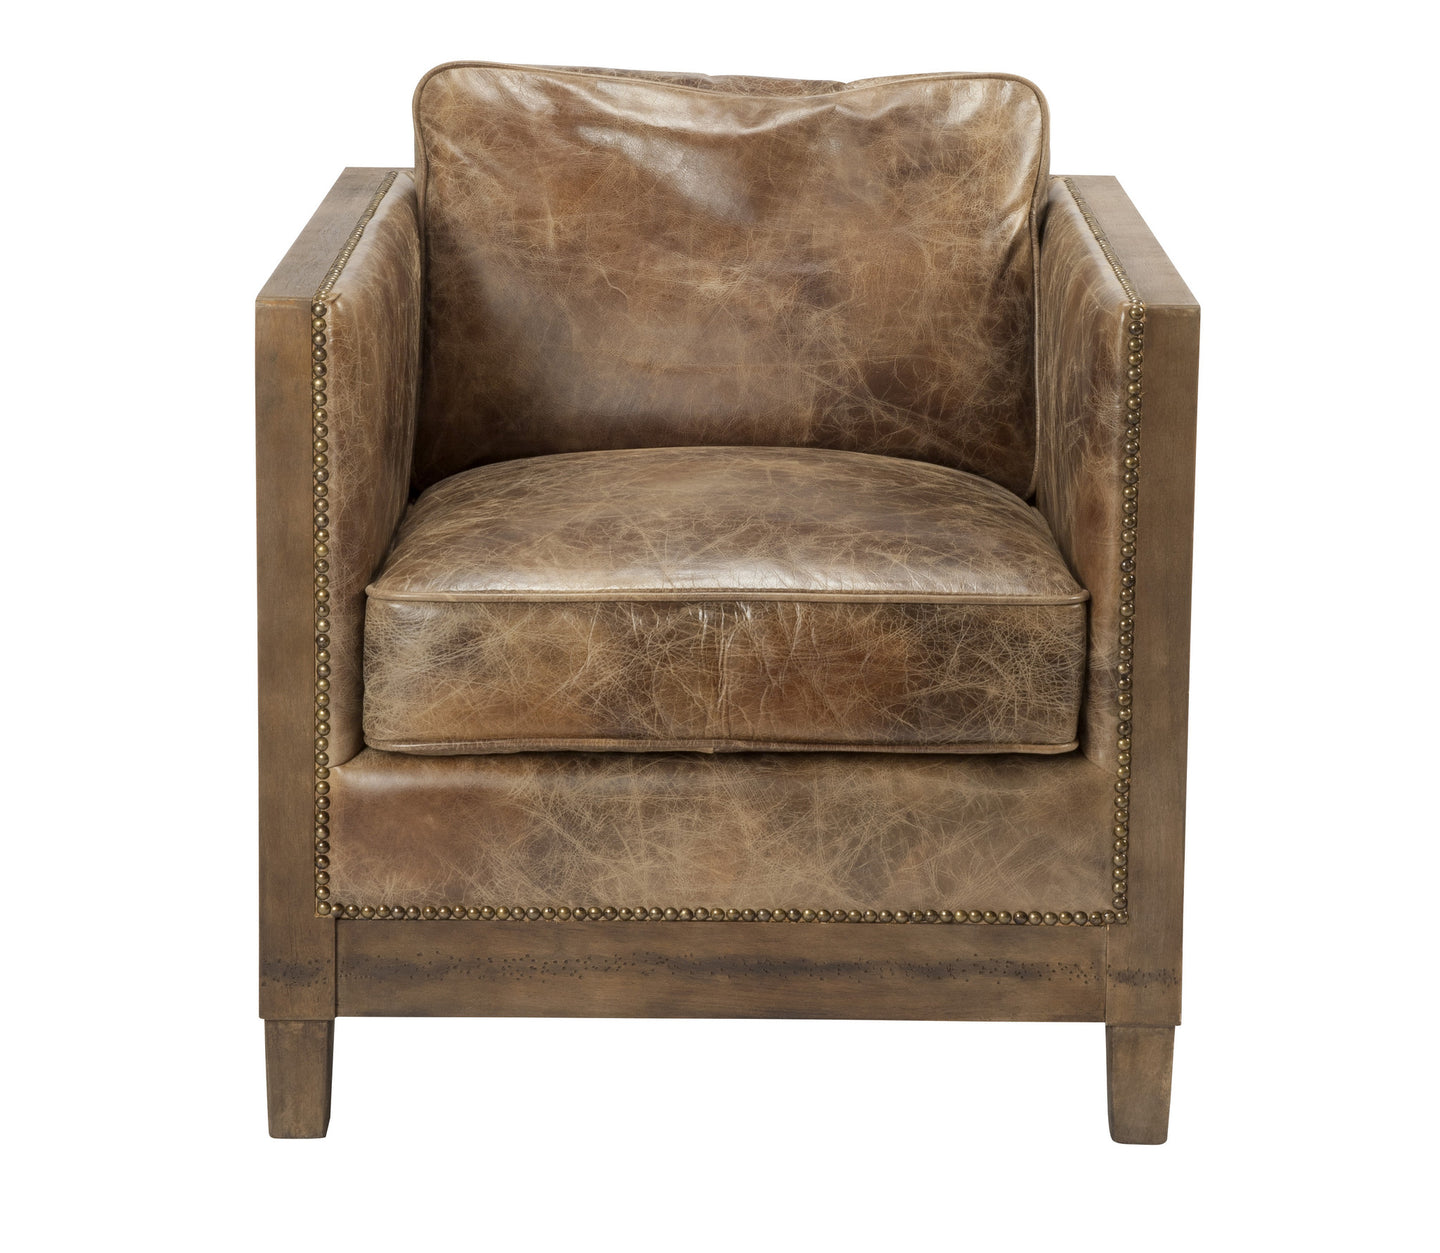 Darlington Club Chair - The Rustic Furniture Store